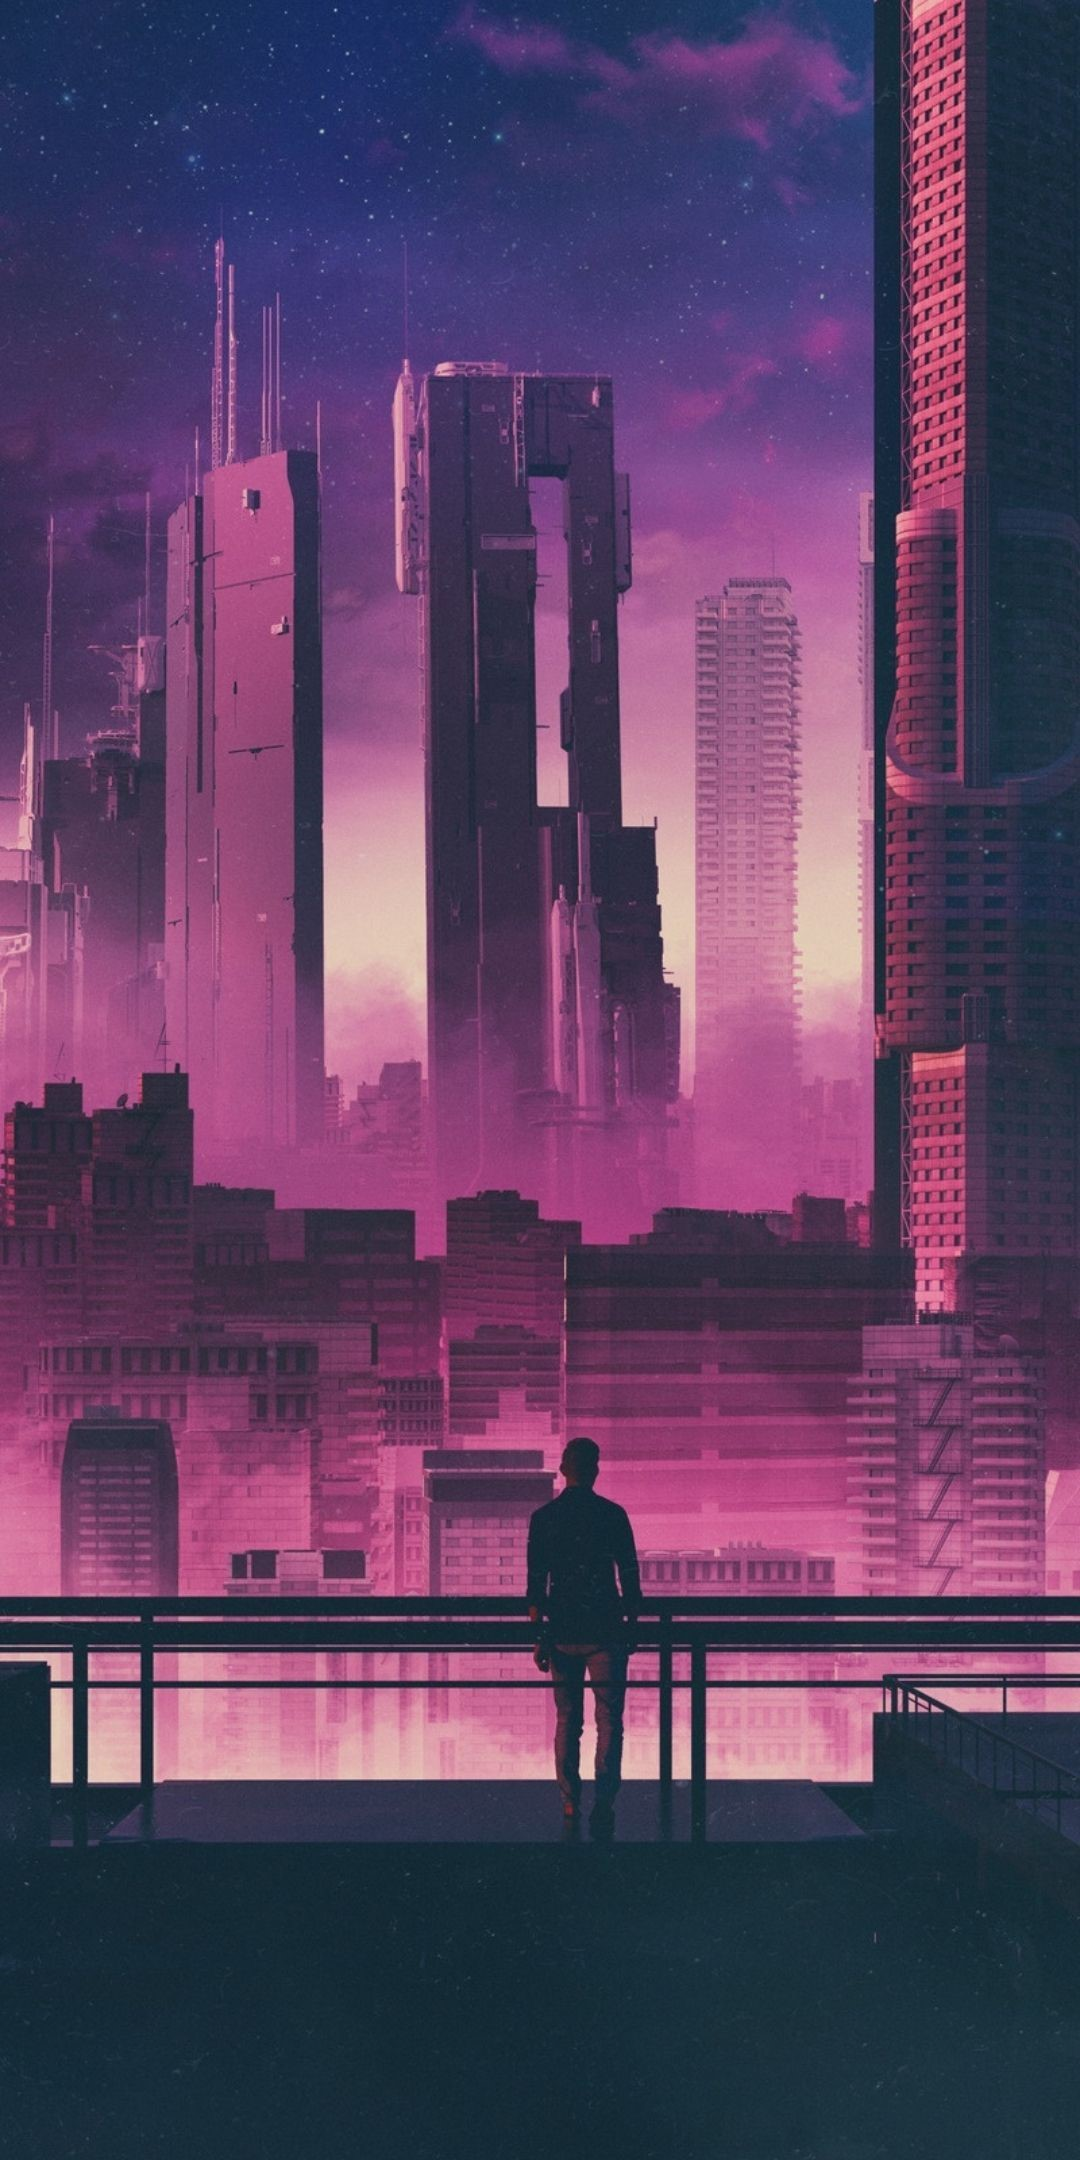 Cyberpunk Samsung Mobile Background Wallpaper